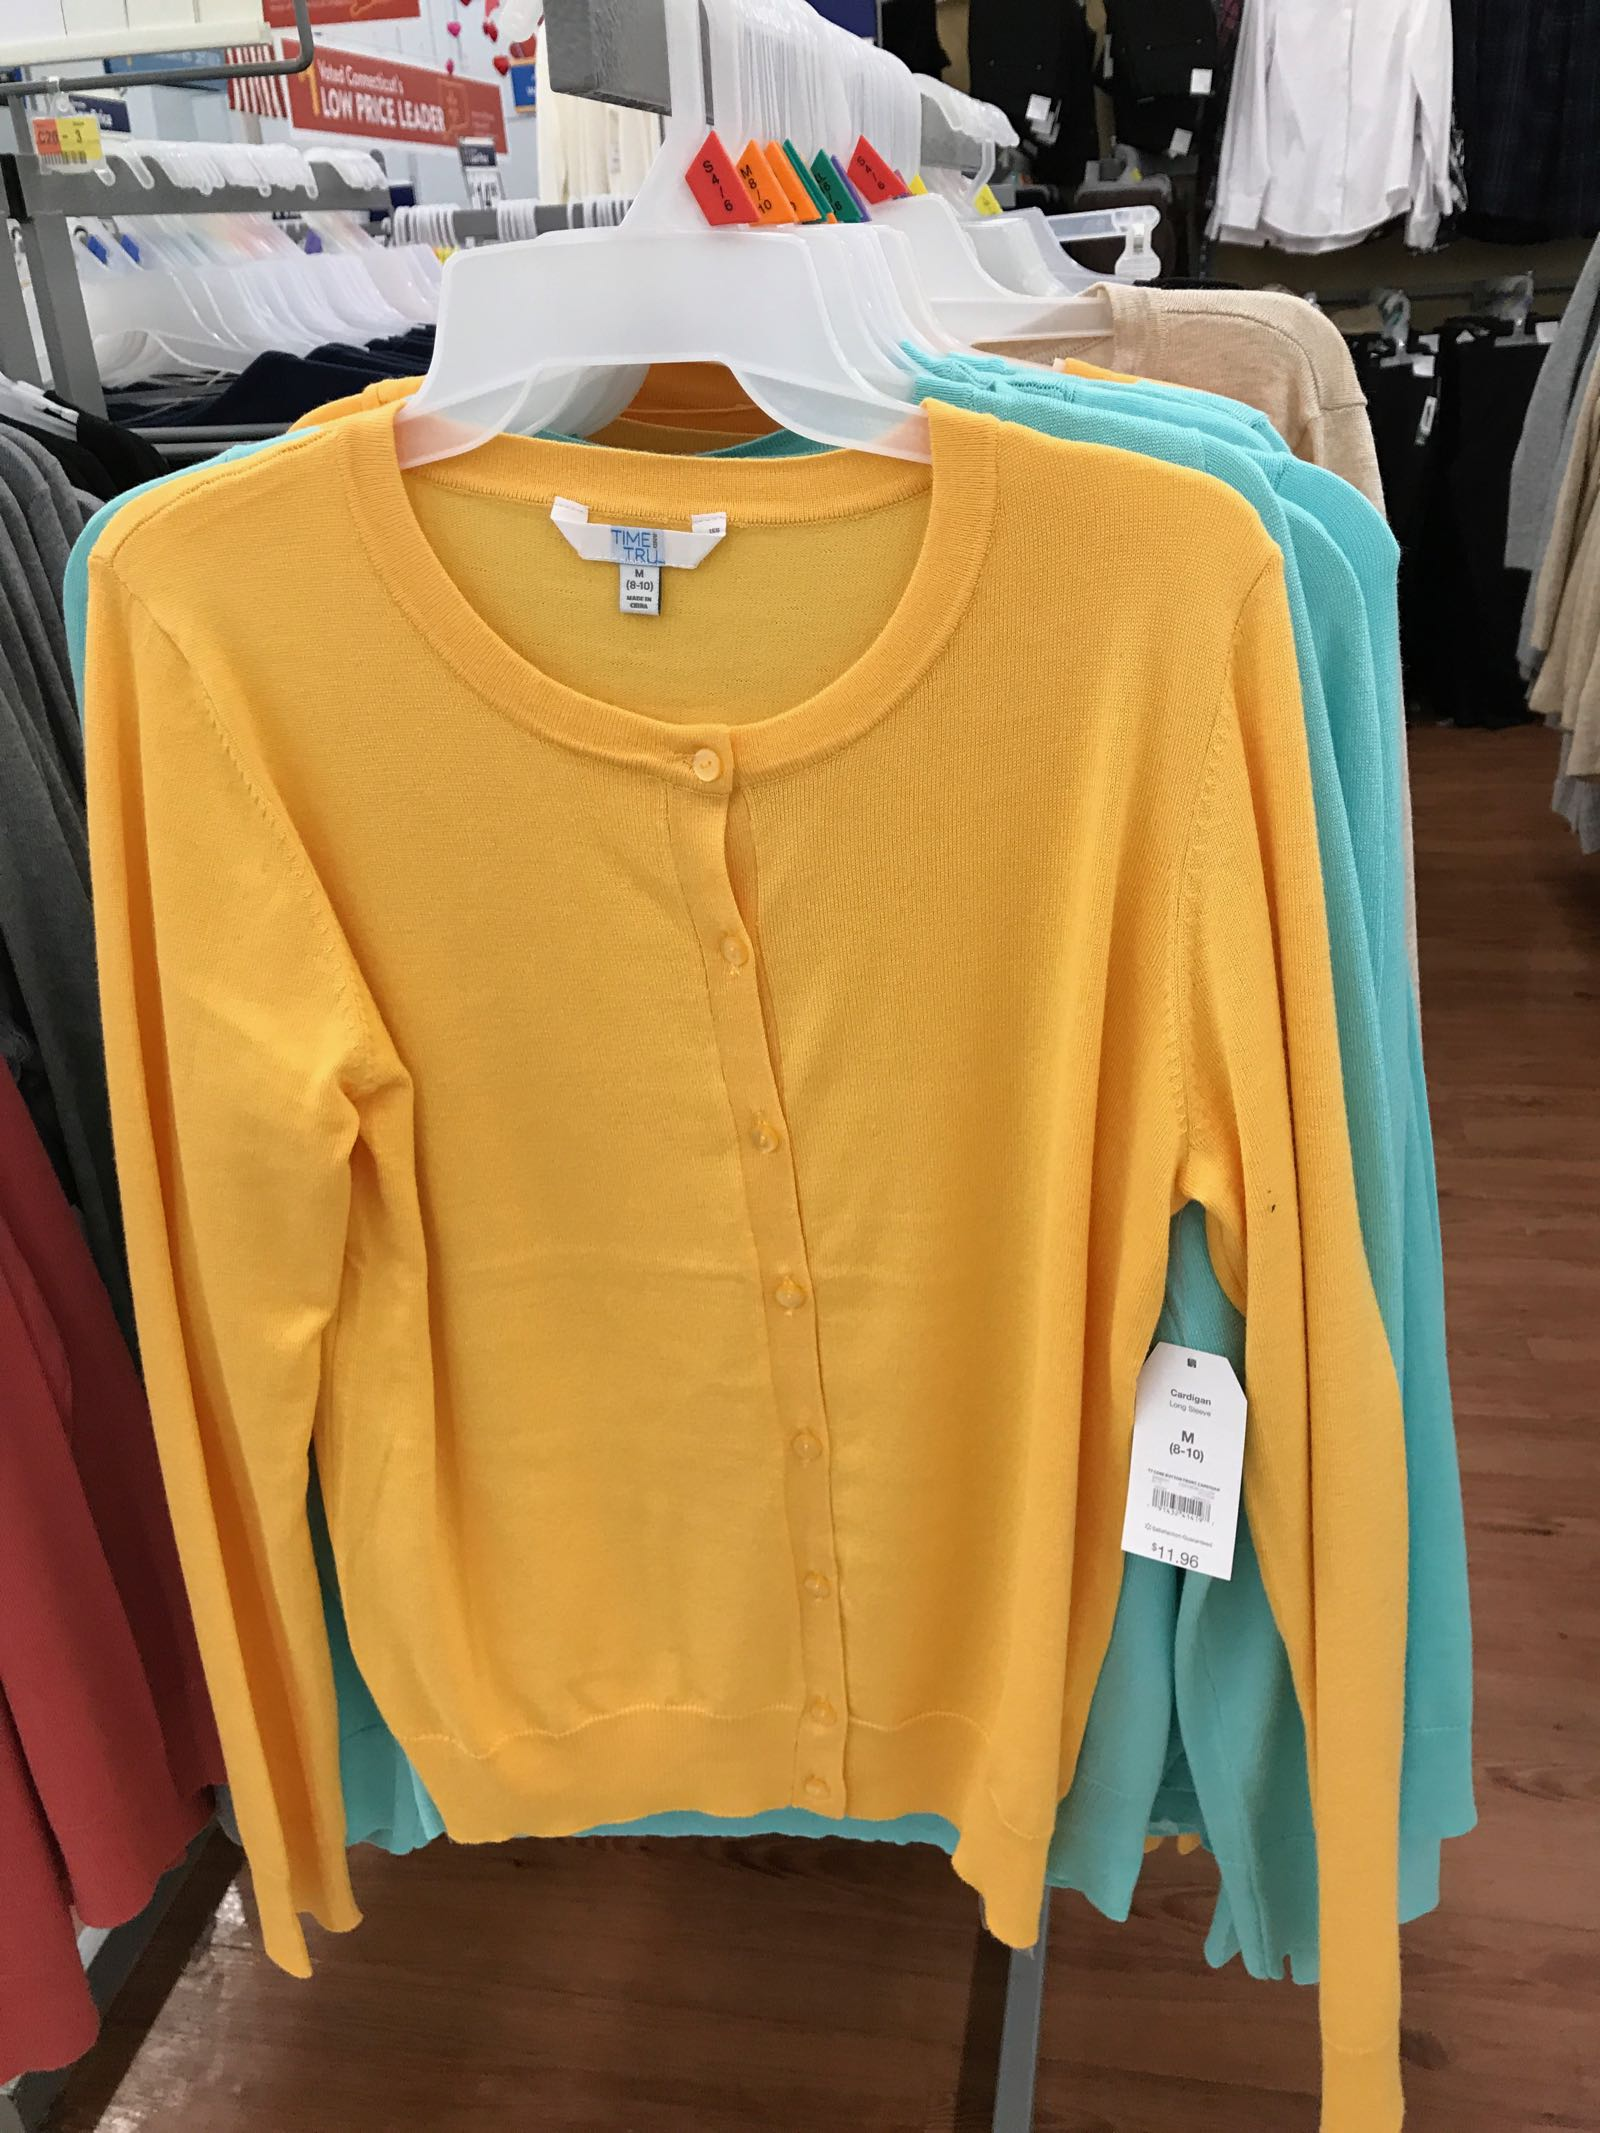 This blogger finds the cutest Walmart clothes!